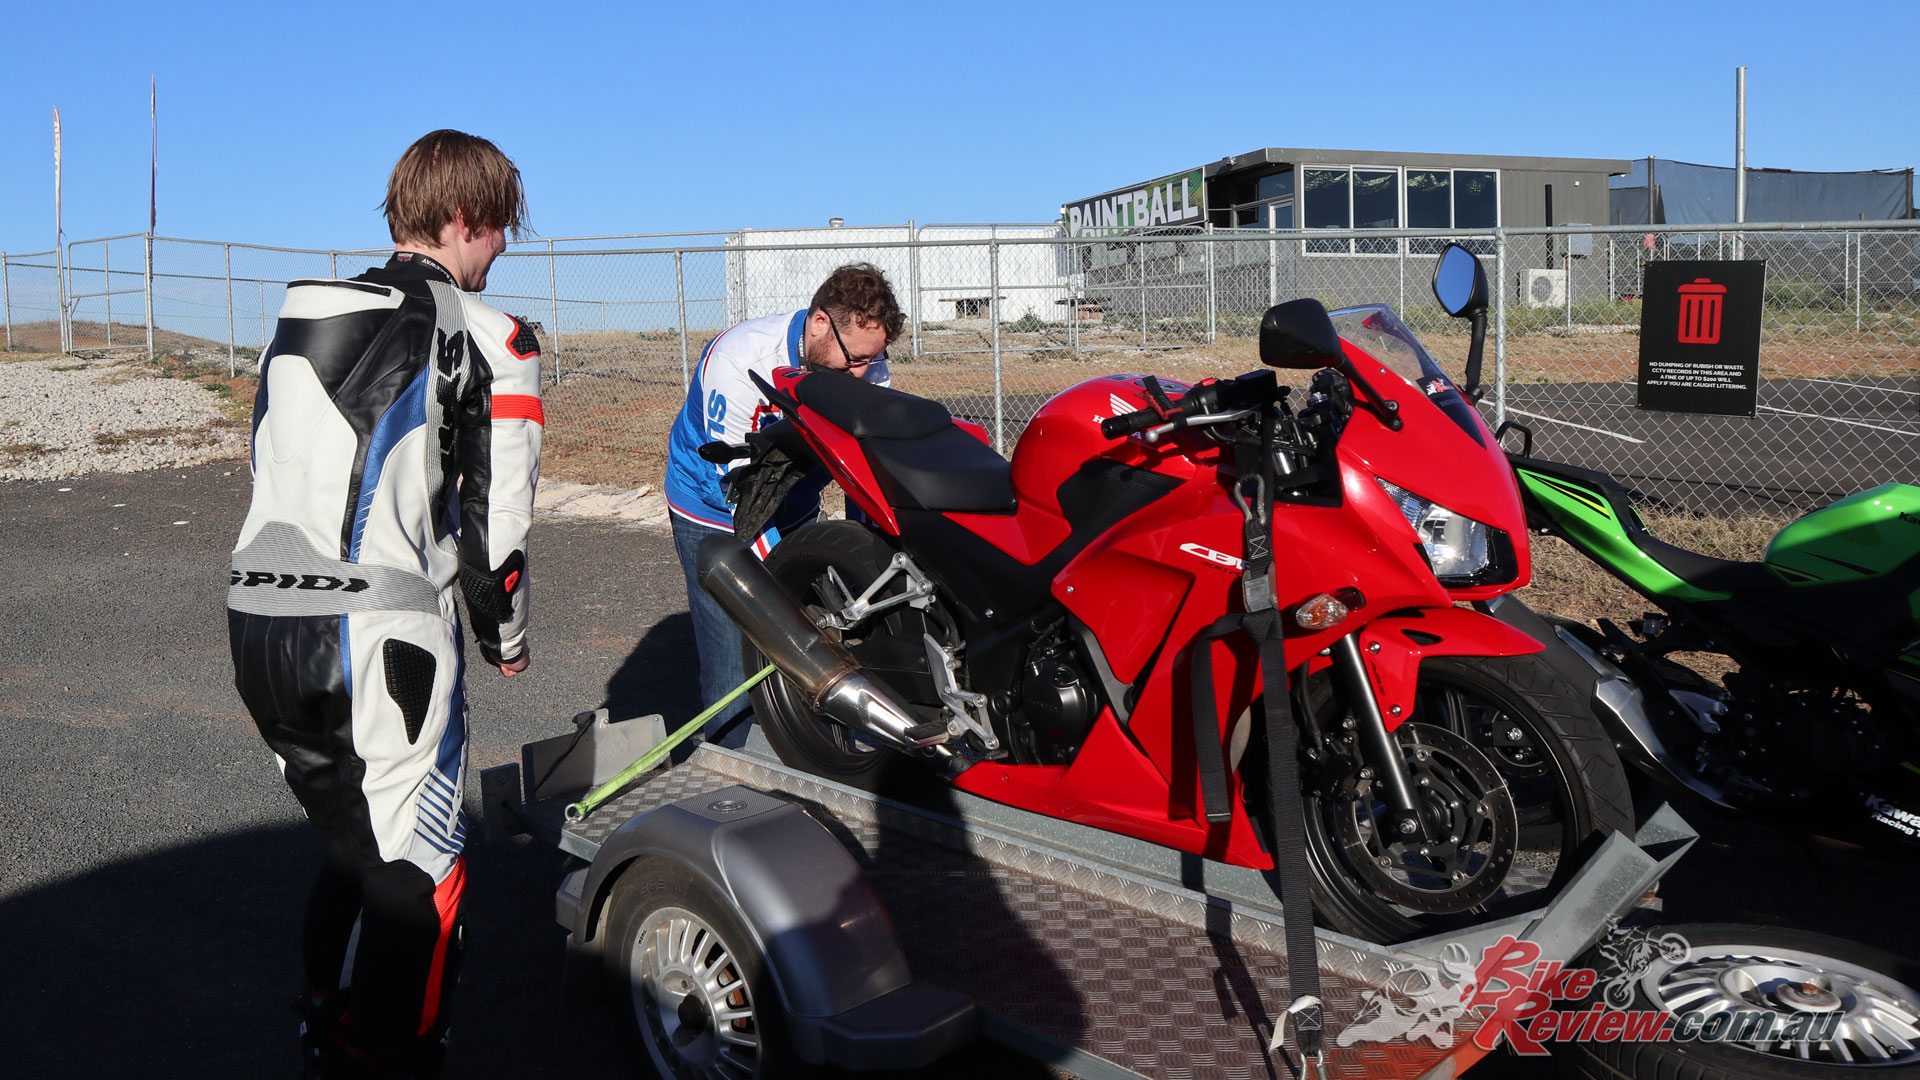 Jack's weapon of choice is the Honda CBR300R